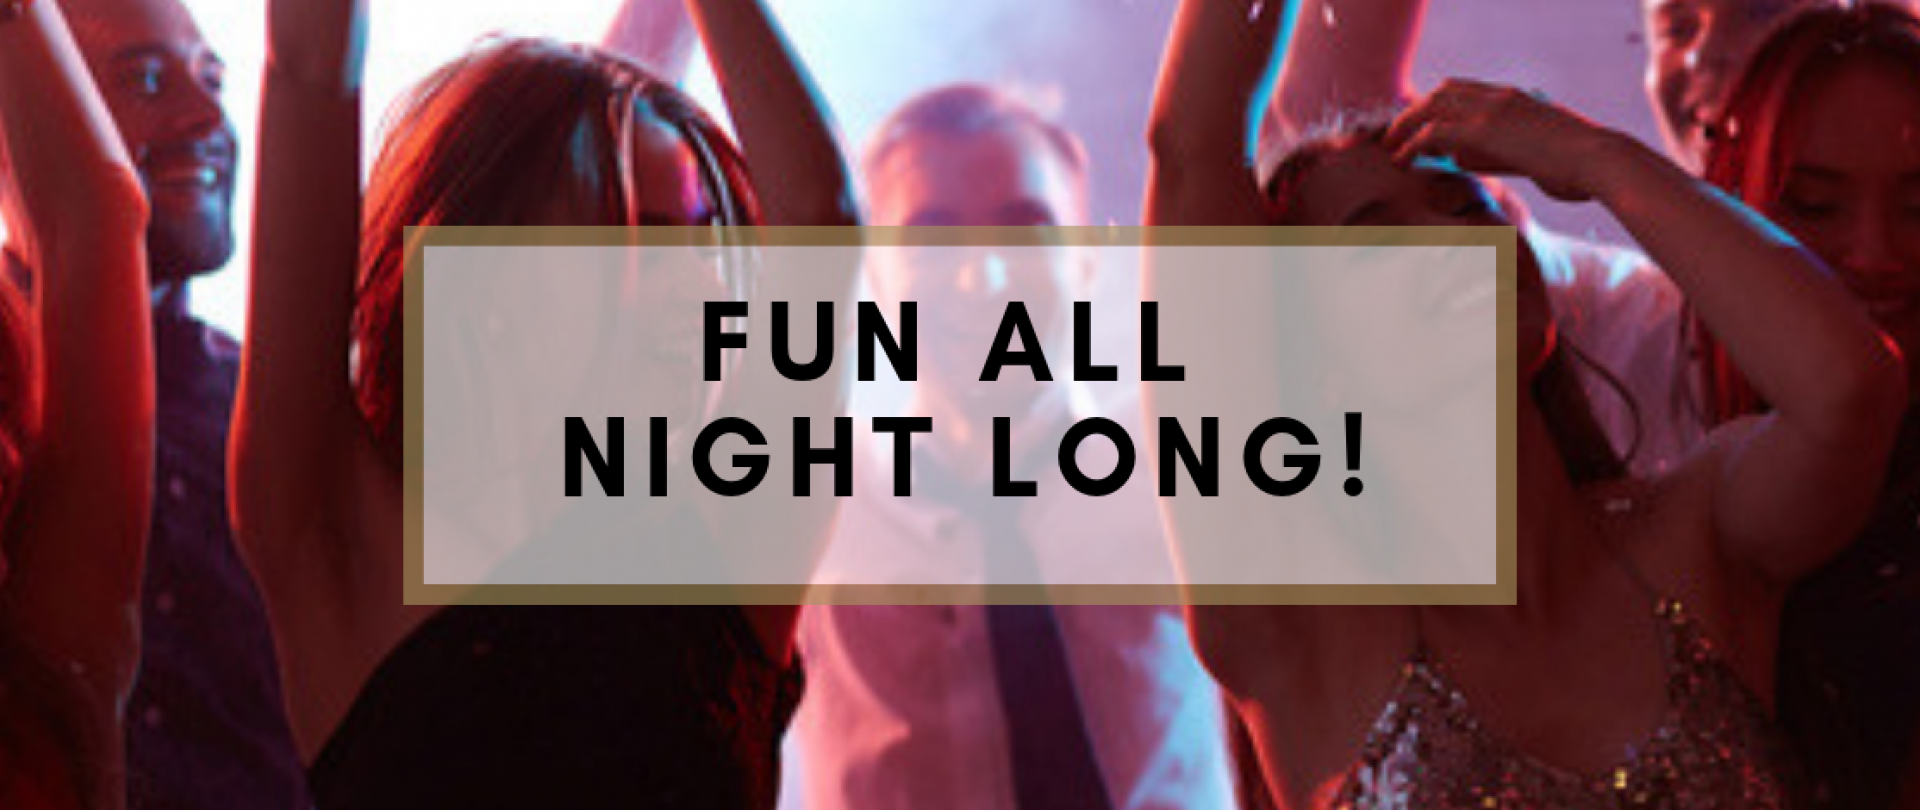 FUN all night long!